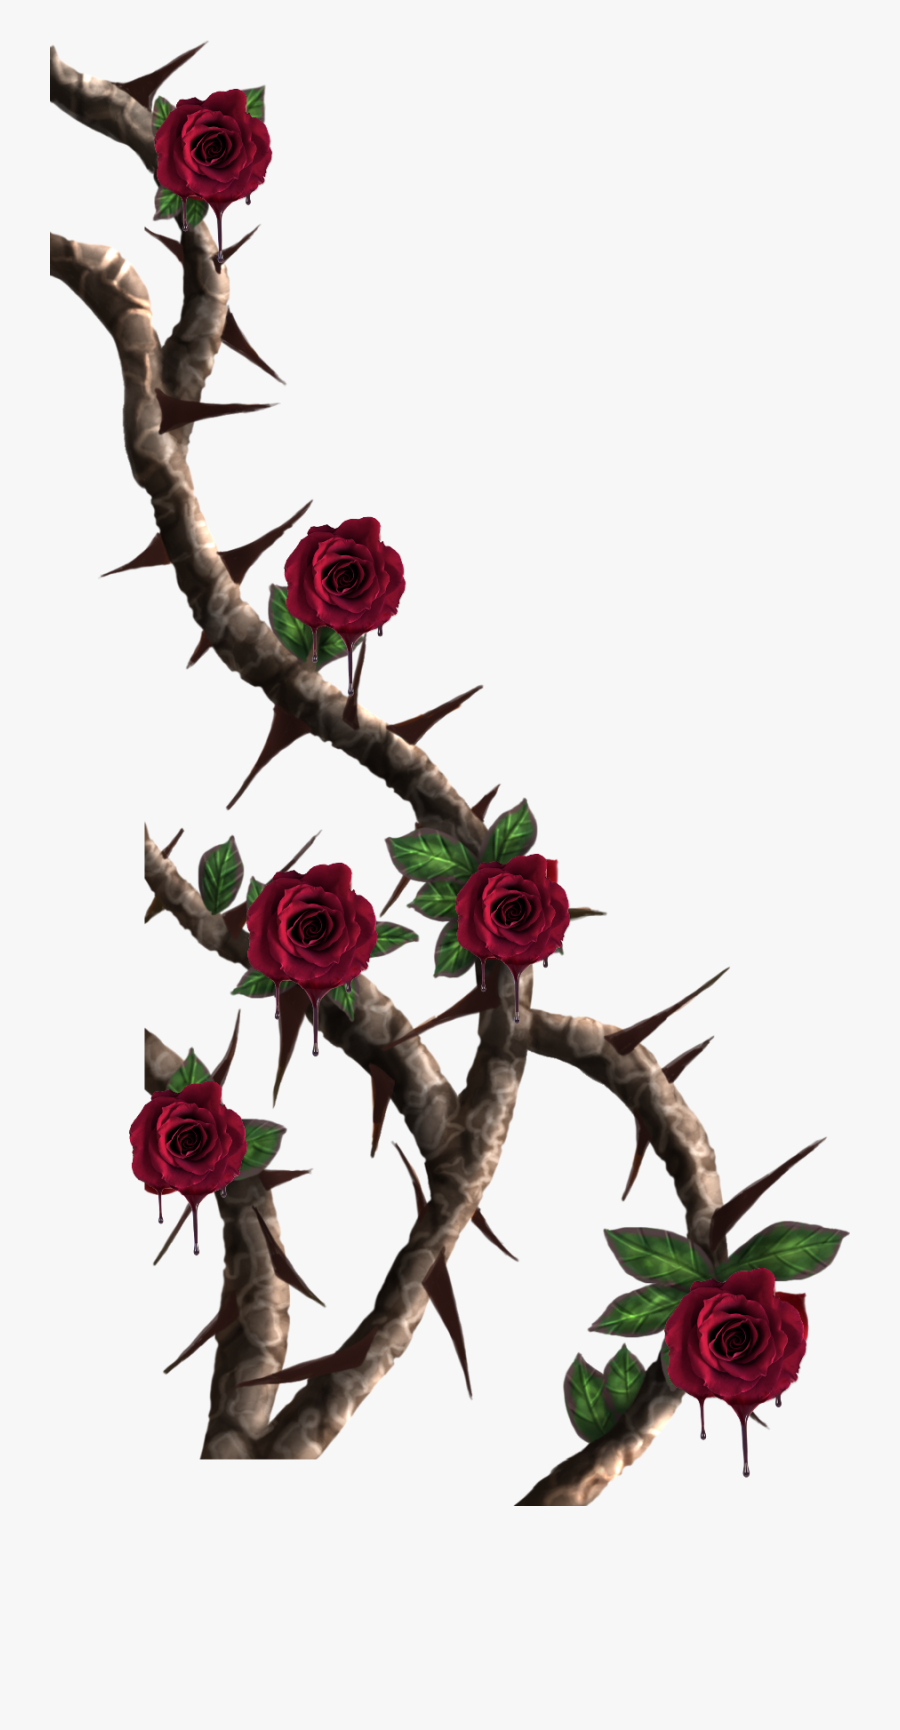 #vines #roses #rose #vine #red #thorns #melting #drip - Roses With Thorns Png, Transparent Clipart